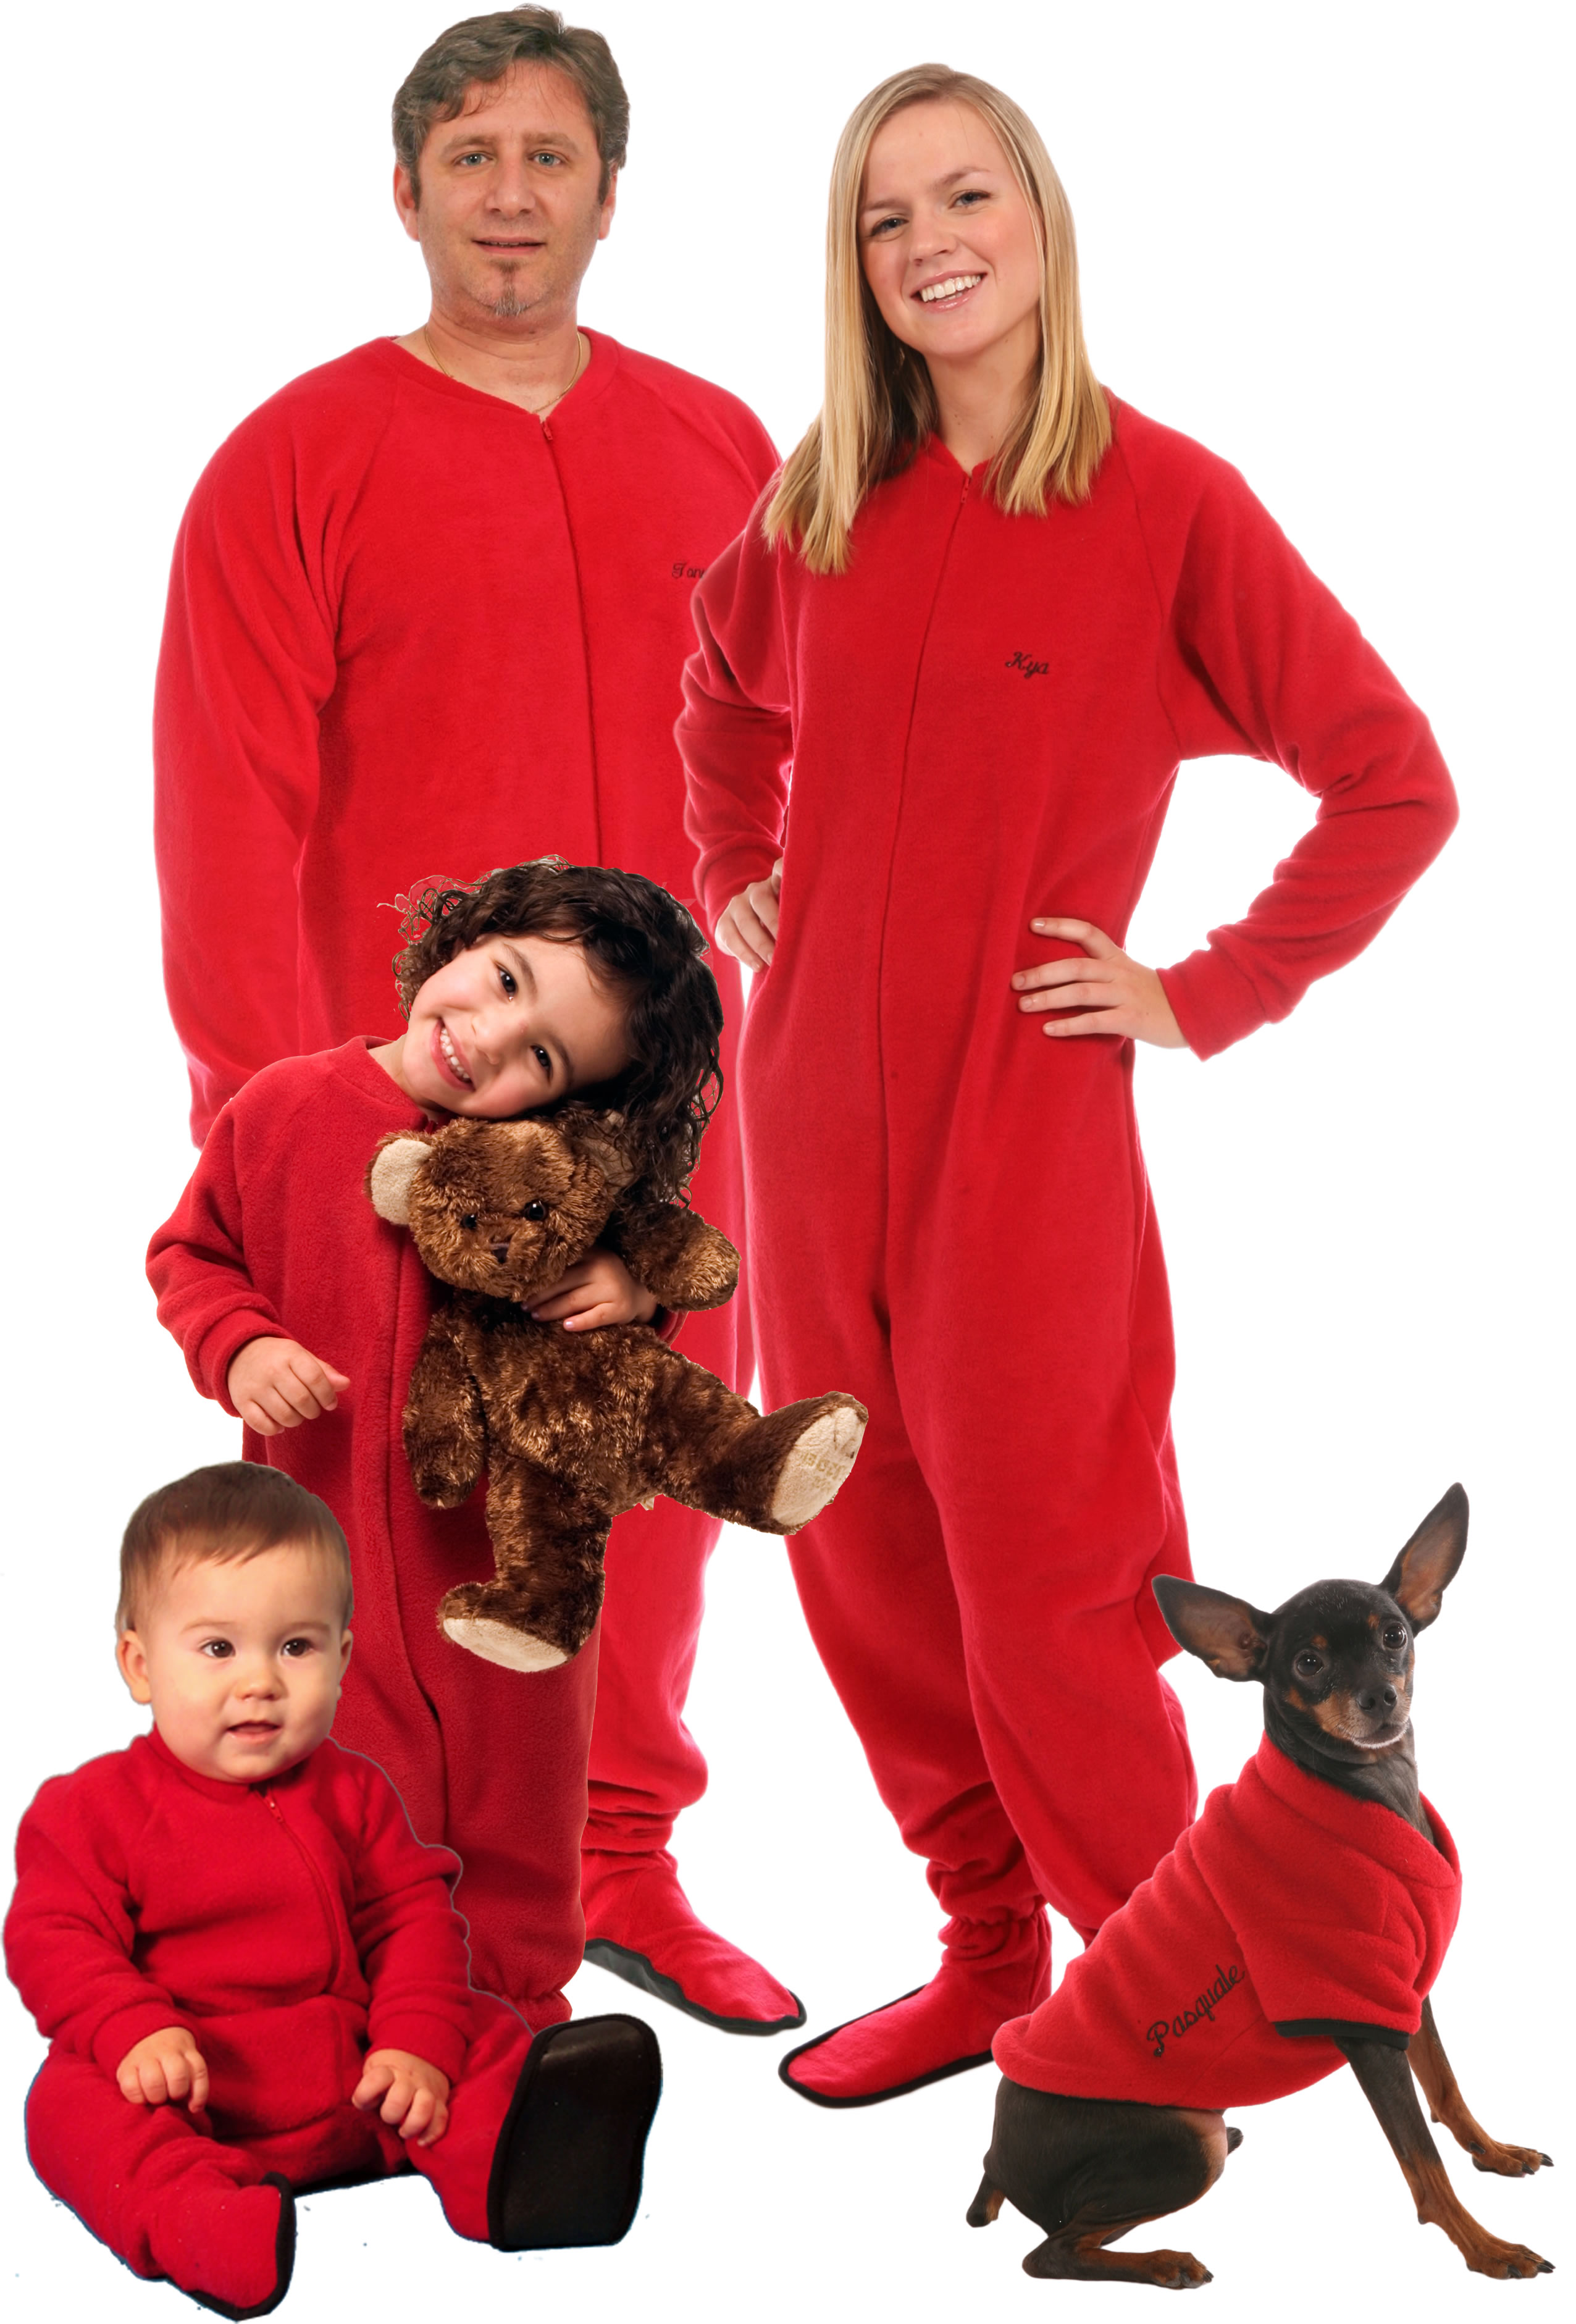 aa48a13f14 Snug as a Bug Pajama Set Review   Giveaway-  205 Value! - Mommies ...